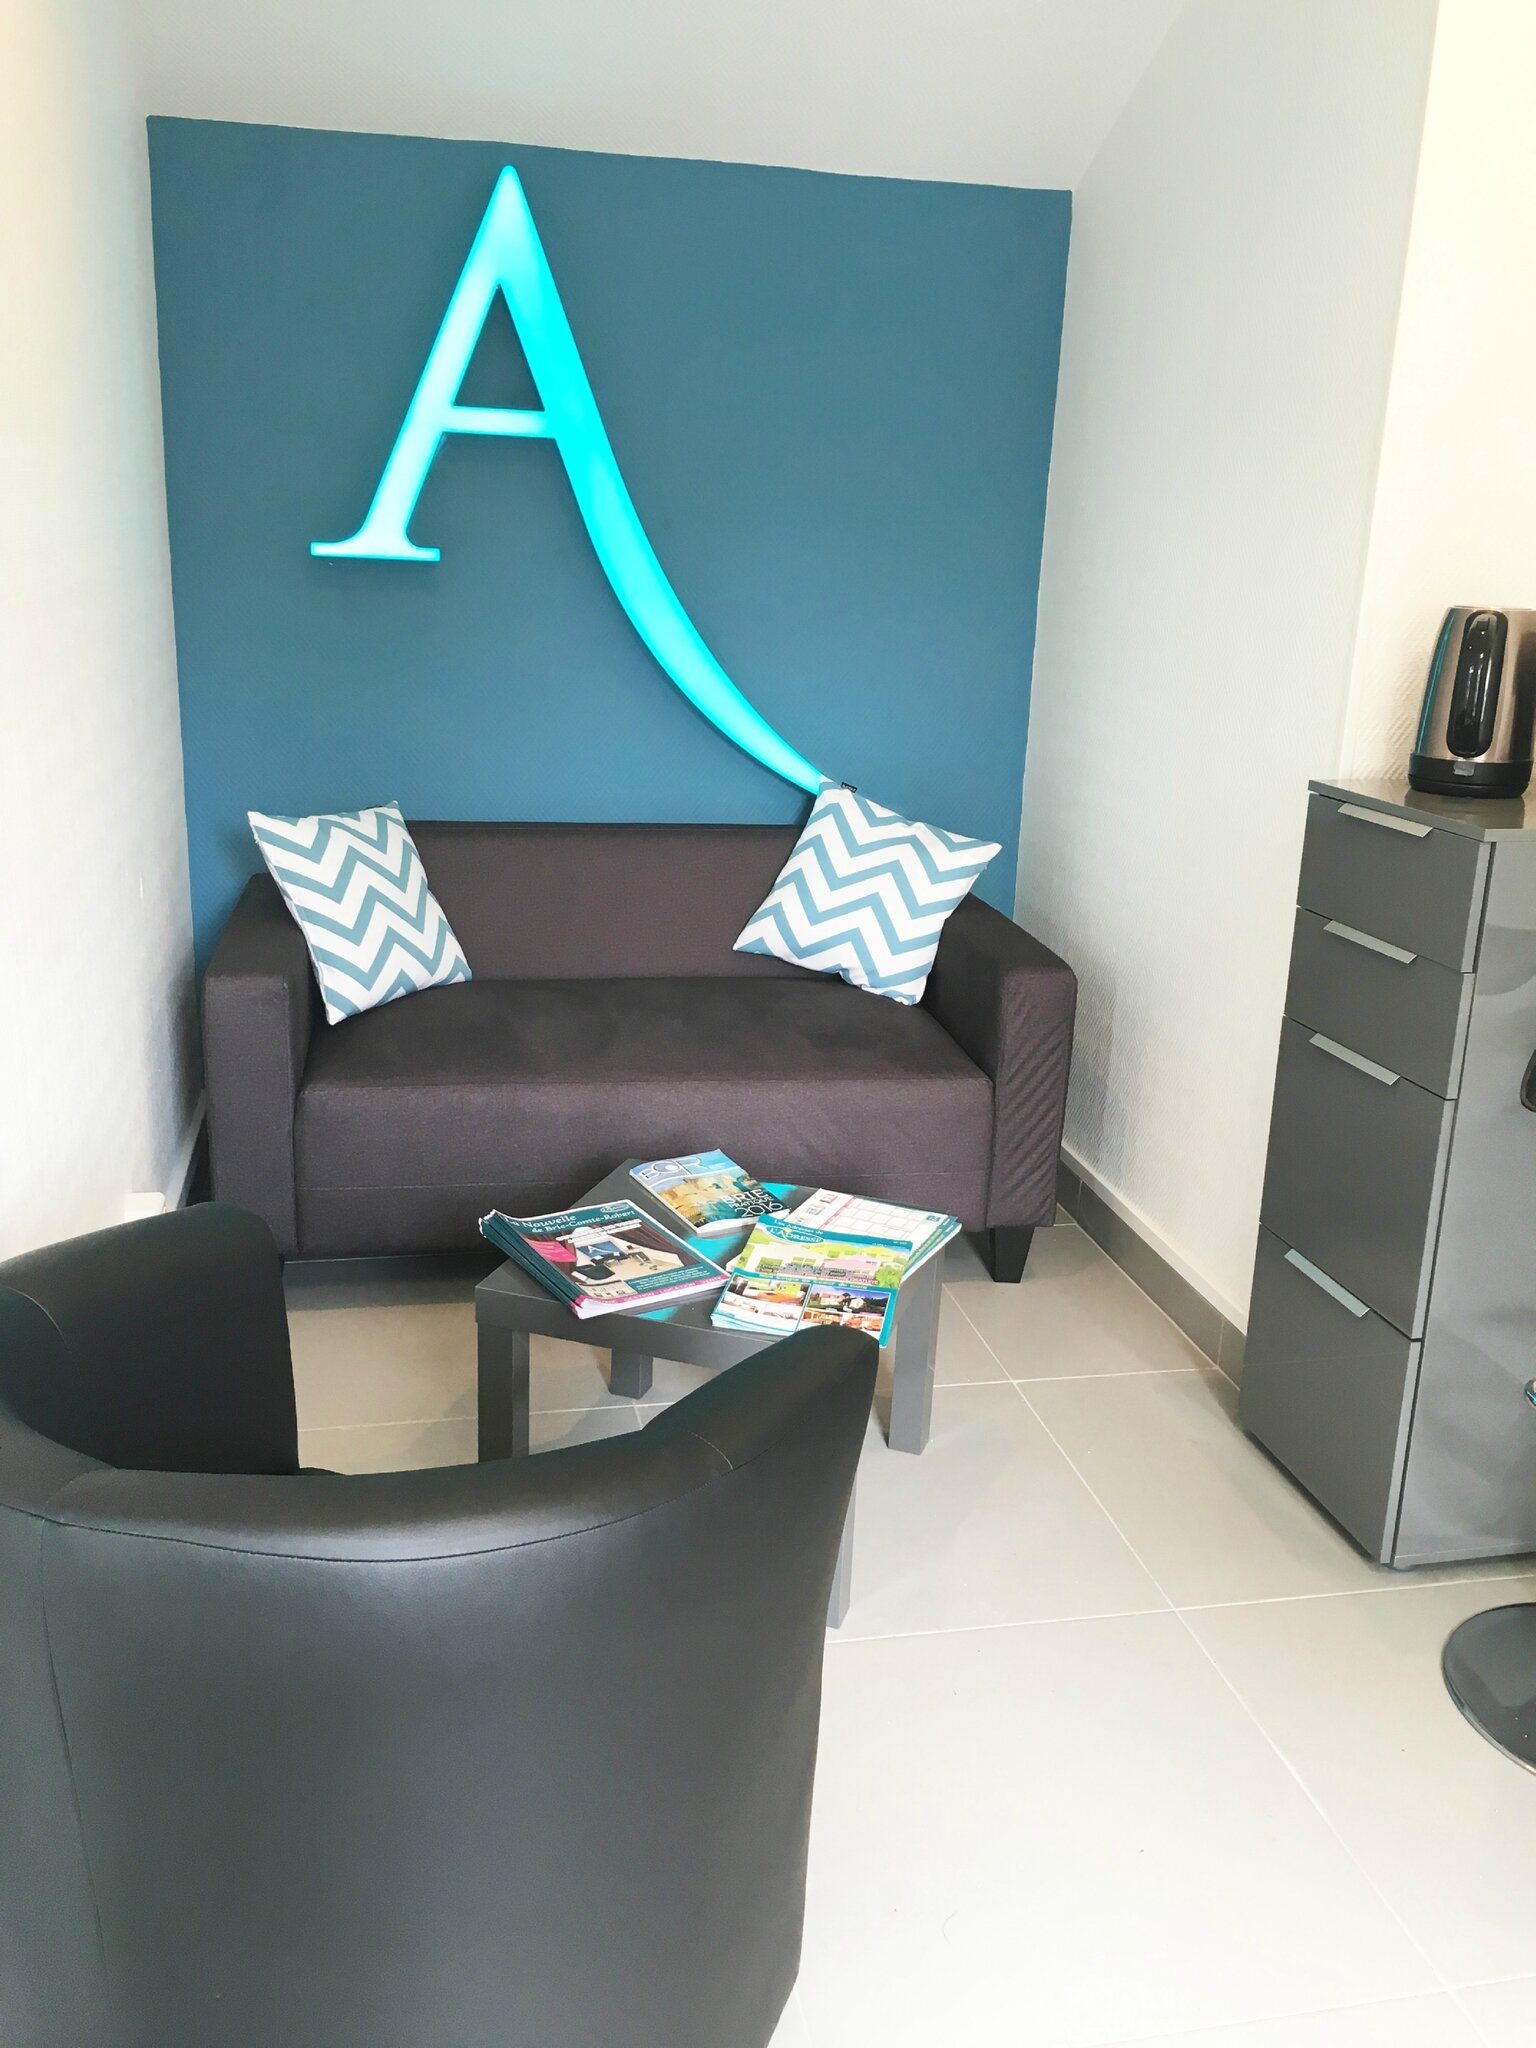 Am nagement d 39 une agence immobili re l 39 adresse brie for Agence immobiliere 84